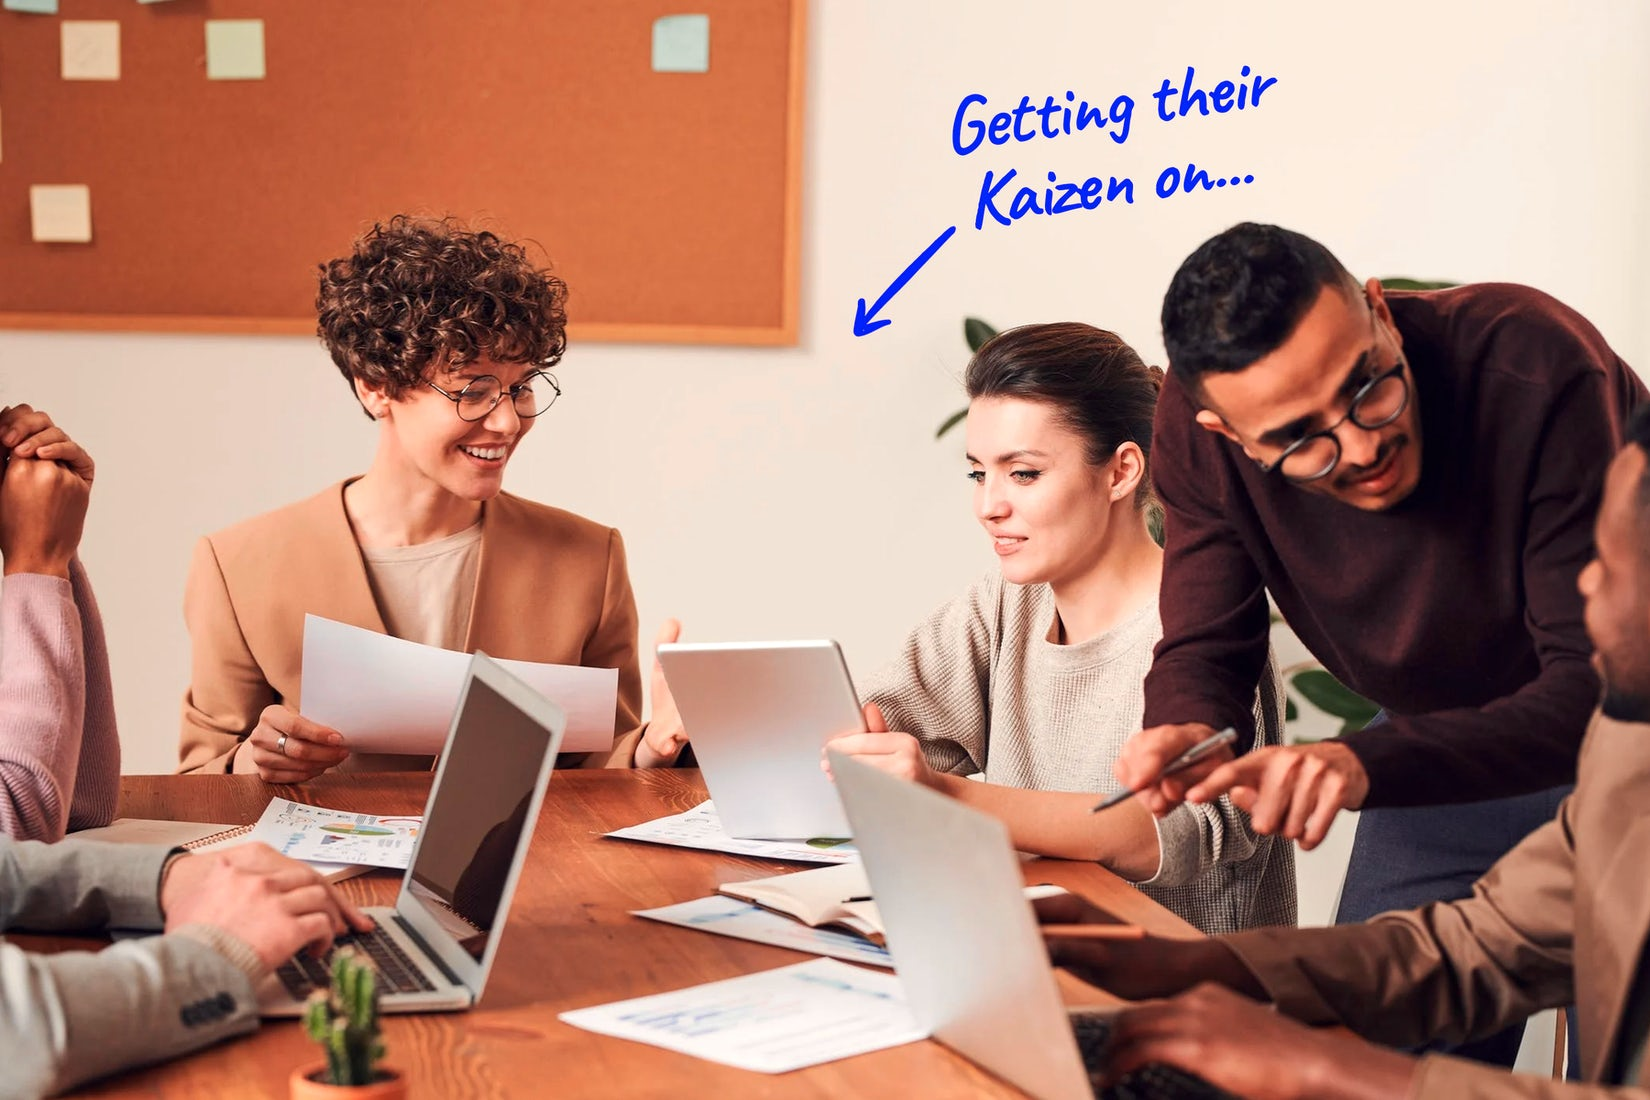 a meeting happening in an office